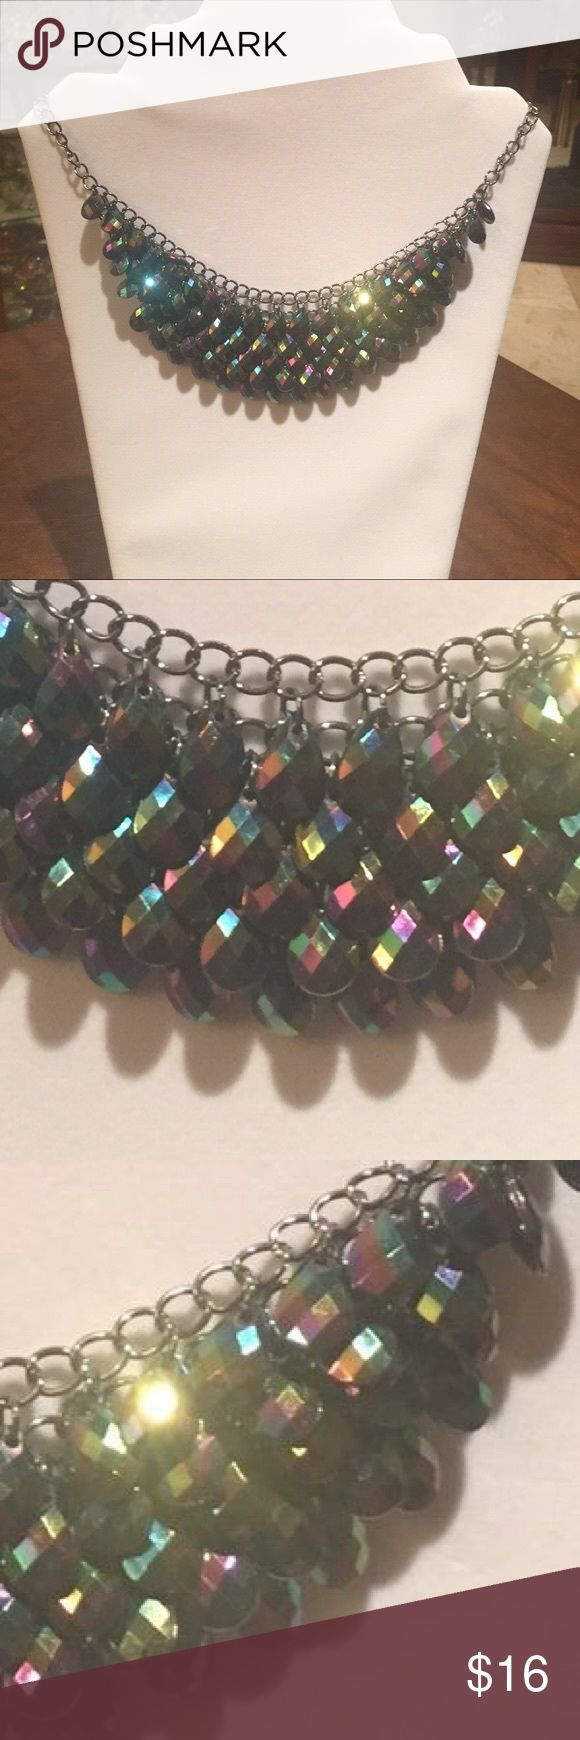 Iridescent purple statement necklace Beautiful colors, great statement piece Candies Jewelry Necklaces